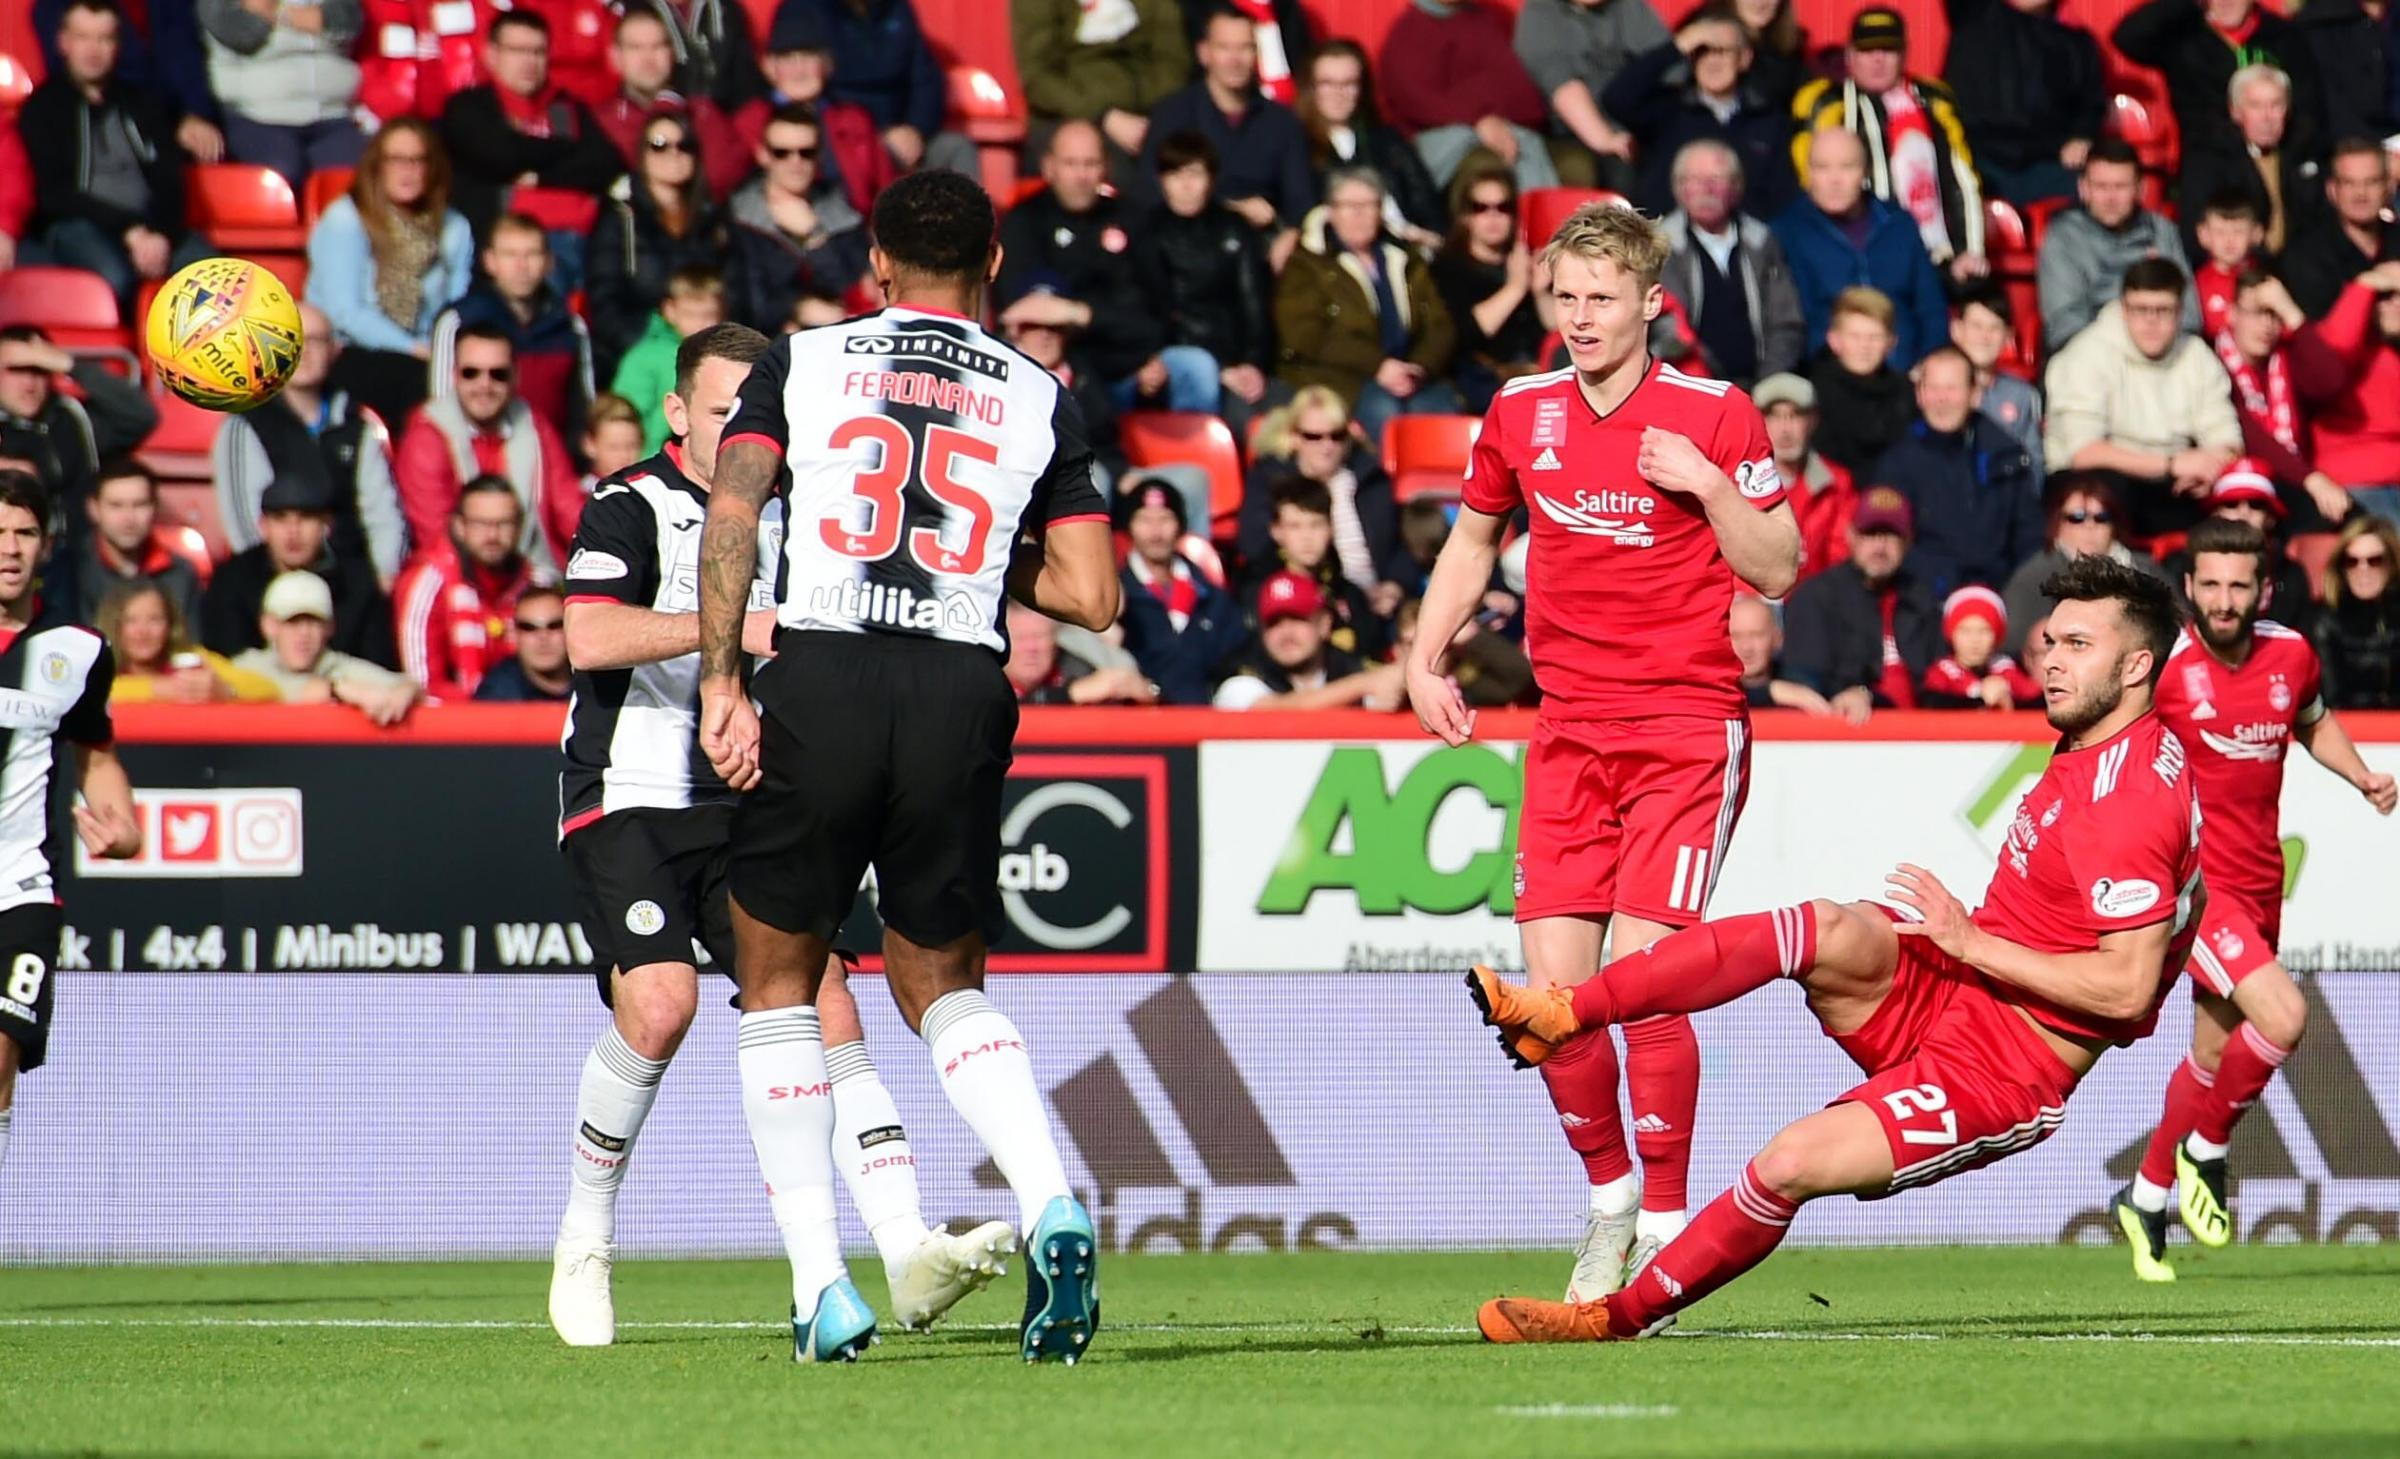 06/10/18 LADBROKES PREMIERSHIP ABERDEEN v ST MIRREN (4-1) PITTODRIE STADIUM - ABERDEEN Aberdeen's Connor McLennan scores to make it 2-0